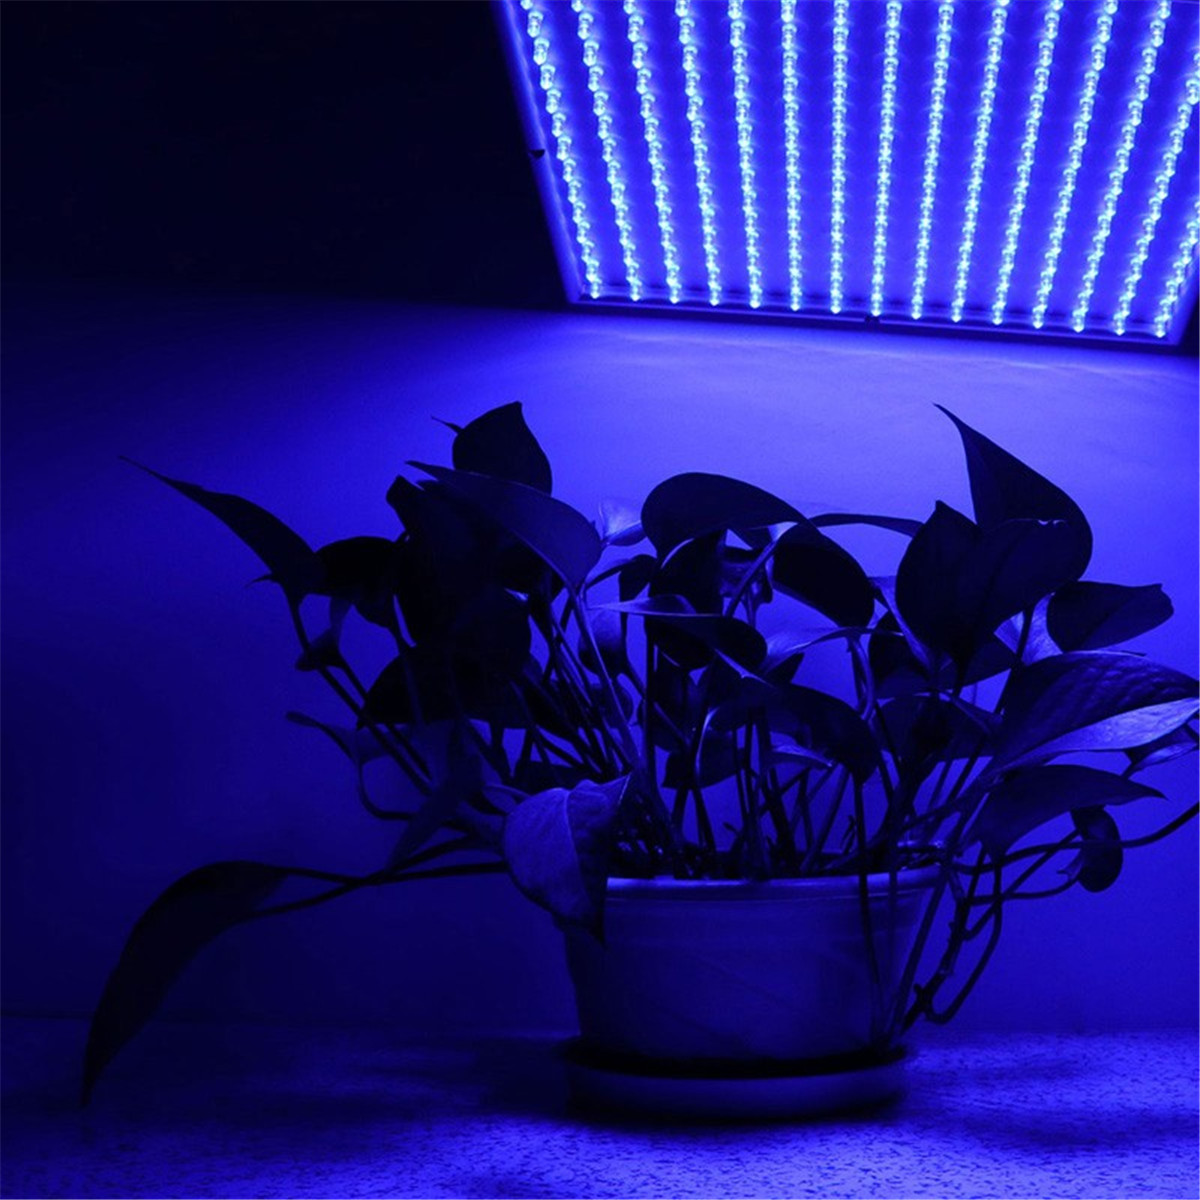 225 LED Grow Light Full Spectrum 14W LED Panel Grow Lamp For Greenhouse Horticulture Indoor Plant Flowering Growth